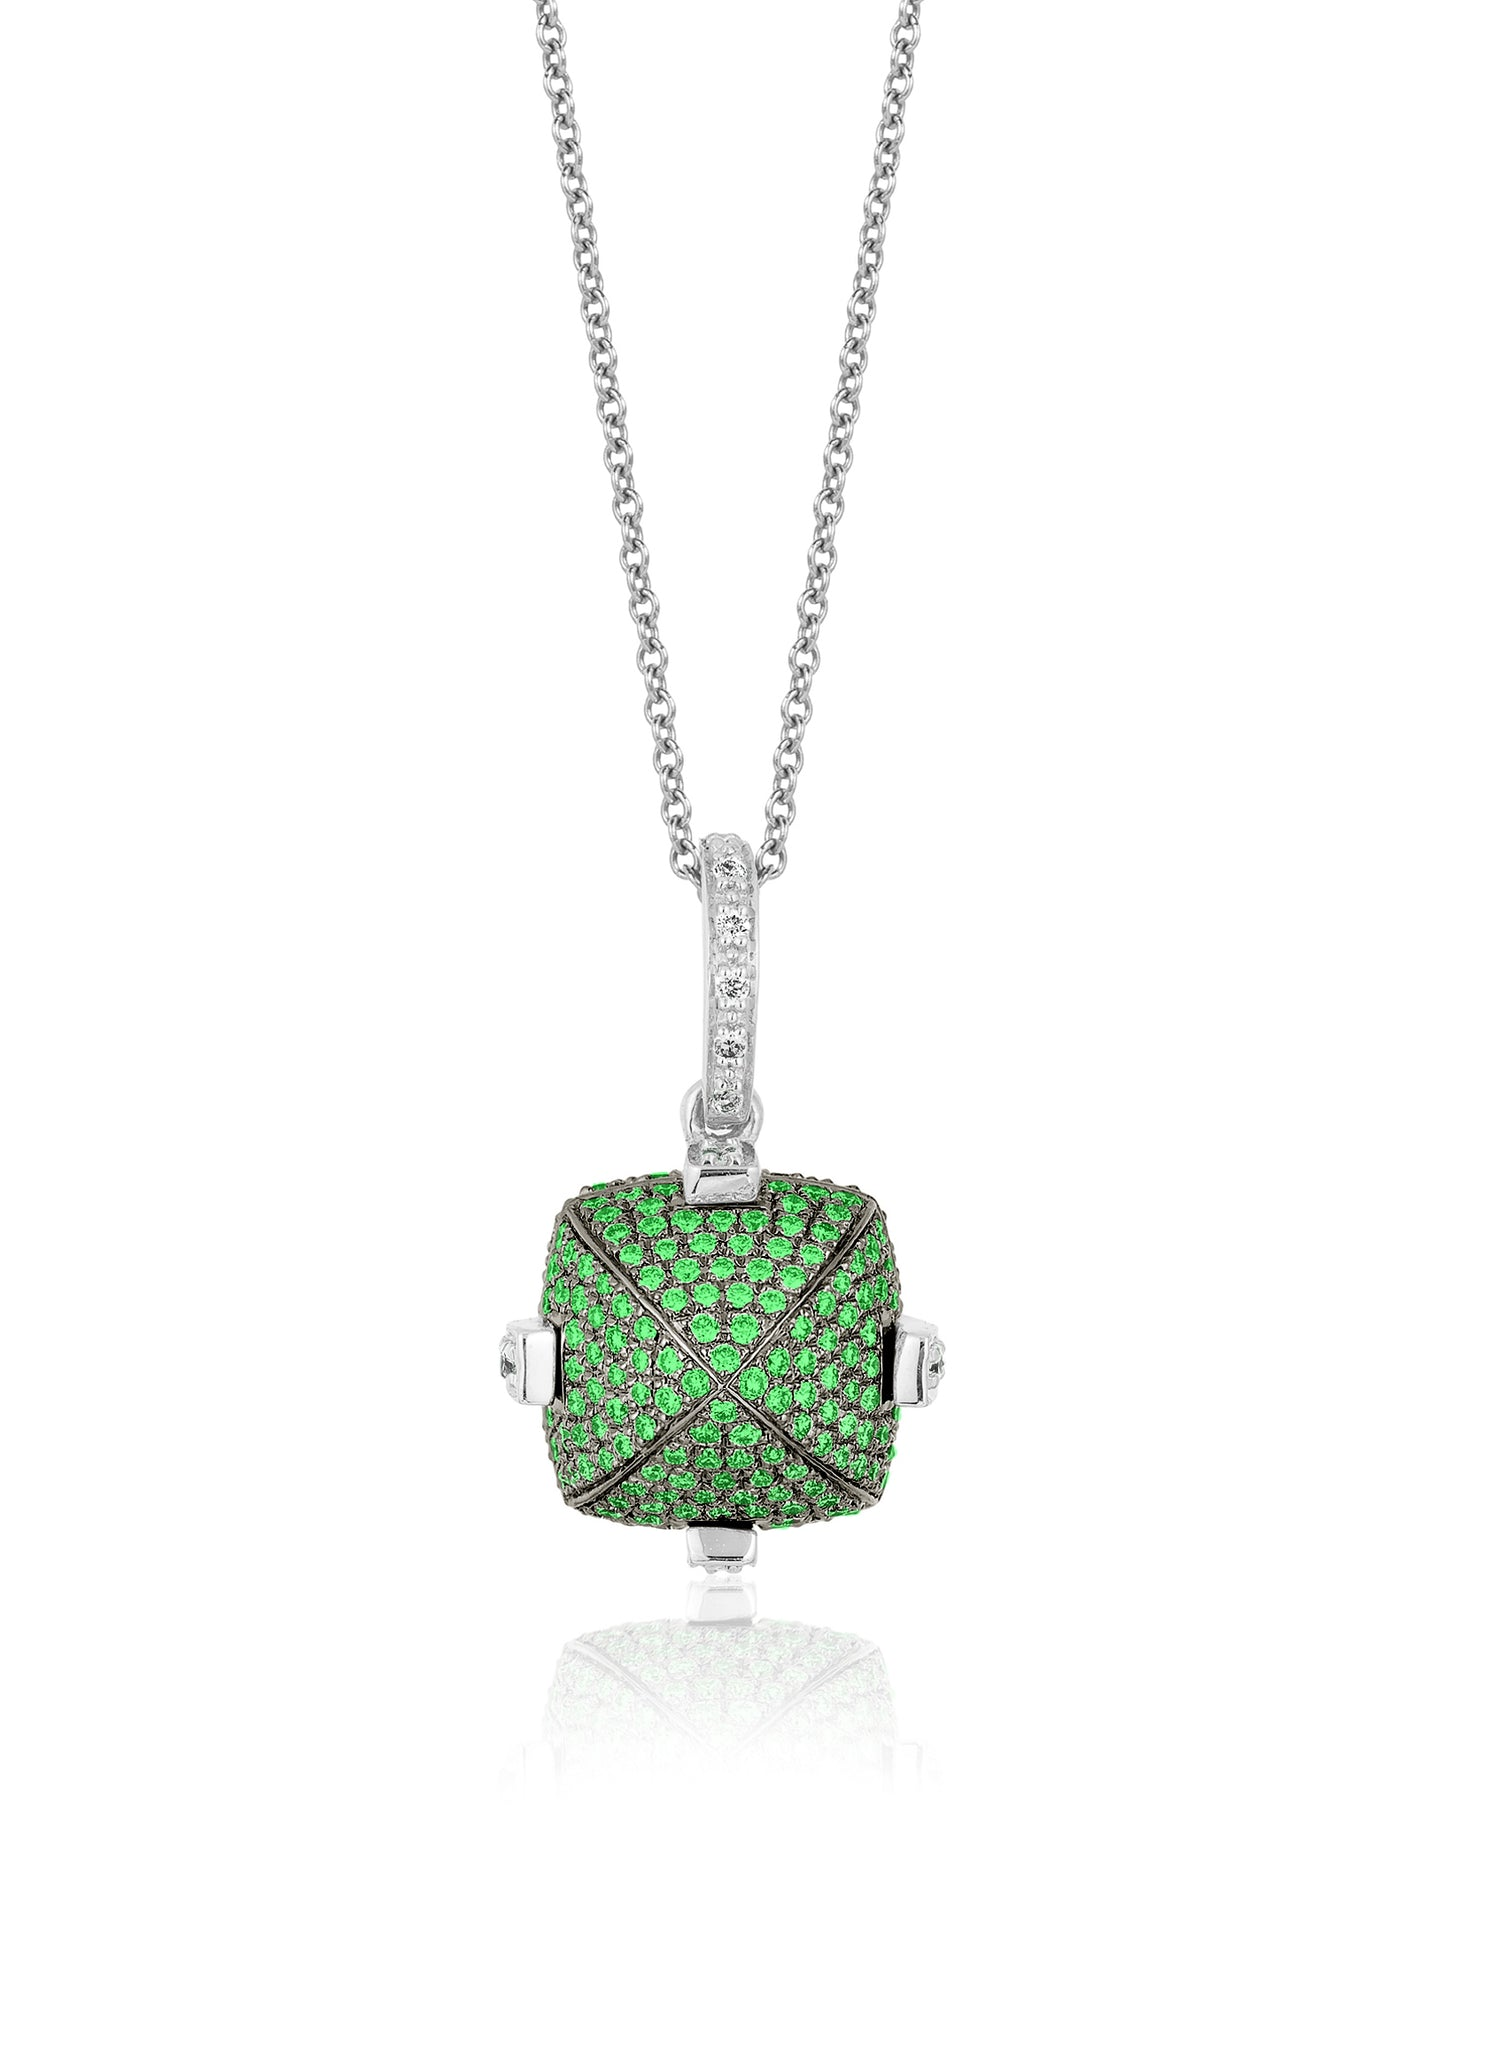 Goshwara Tsavorite and Diamond Pendant Necklace, SALE